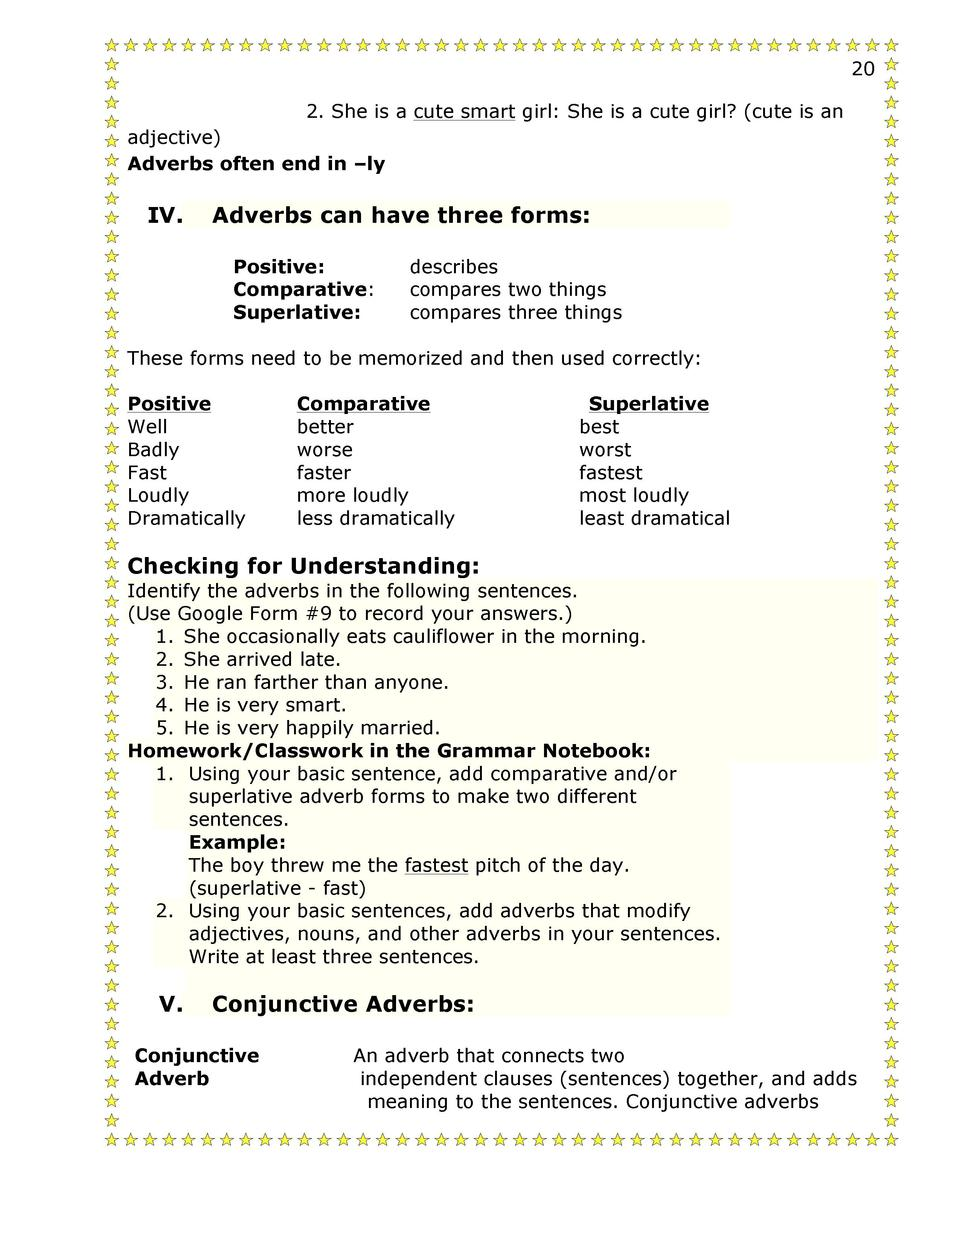 worksheet Conjunctive Adverbs Worksheets worksheet adverb of place exercises and answers mikyu free 13 14 second semester grammar 1 simplebooklet com other